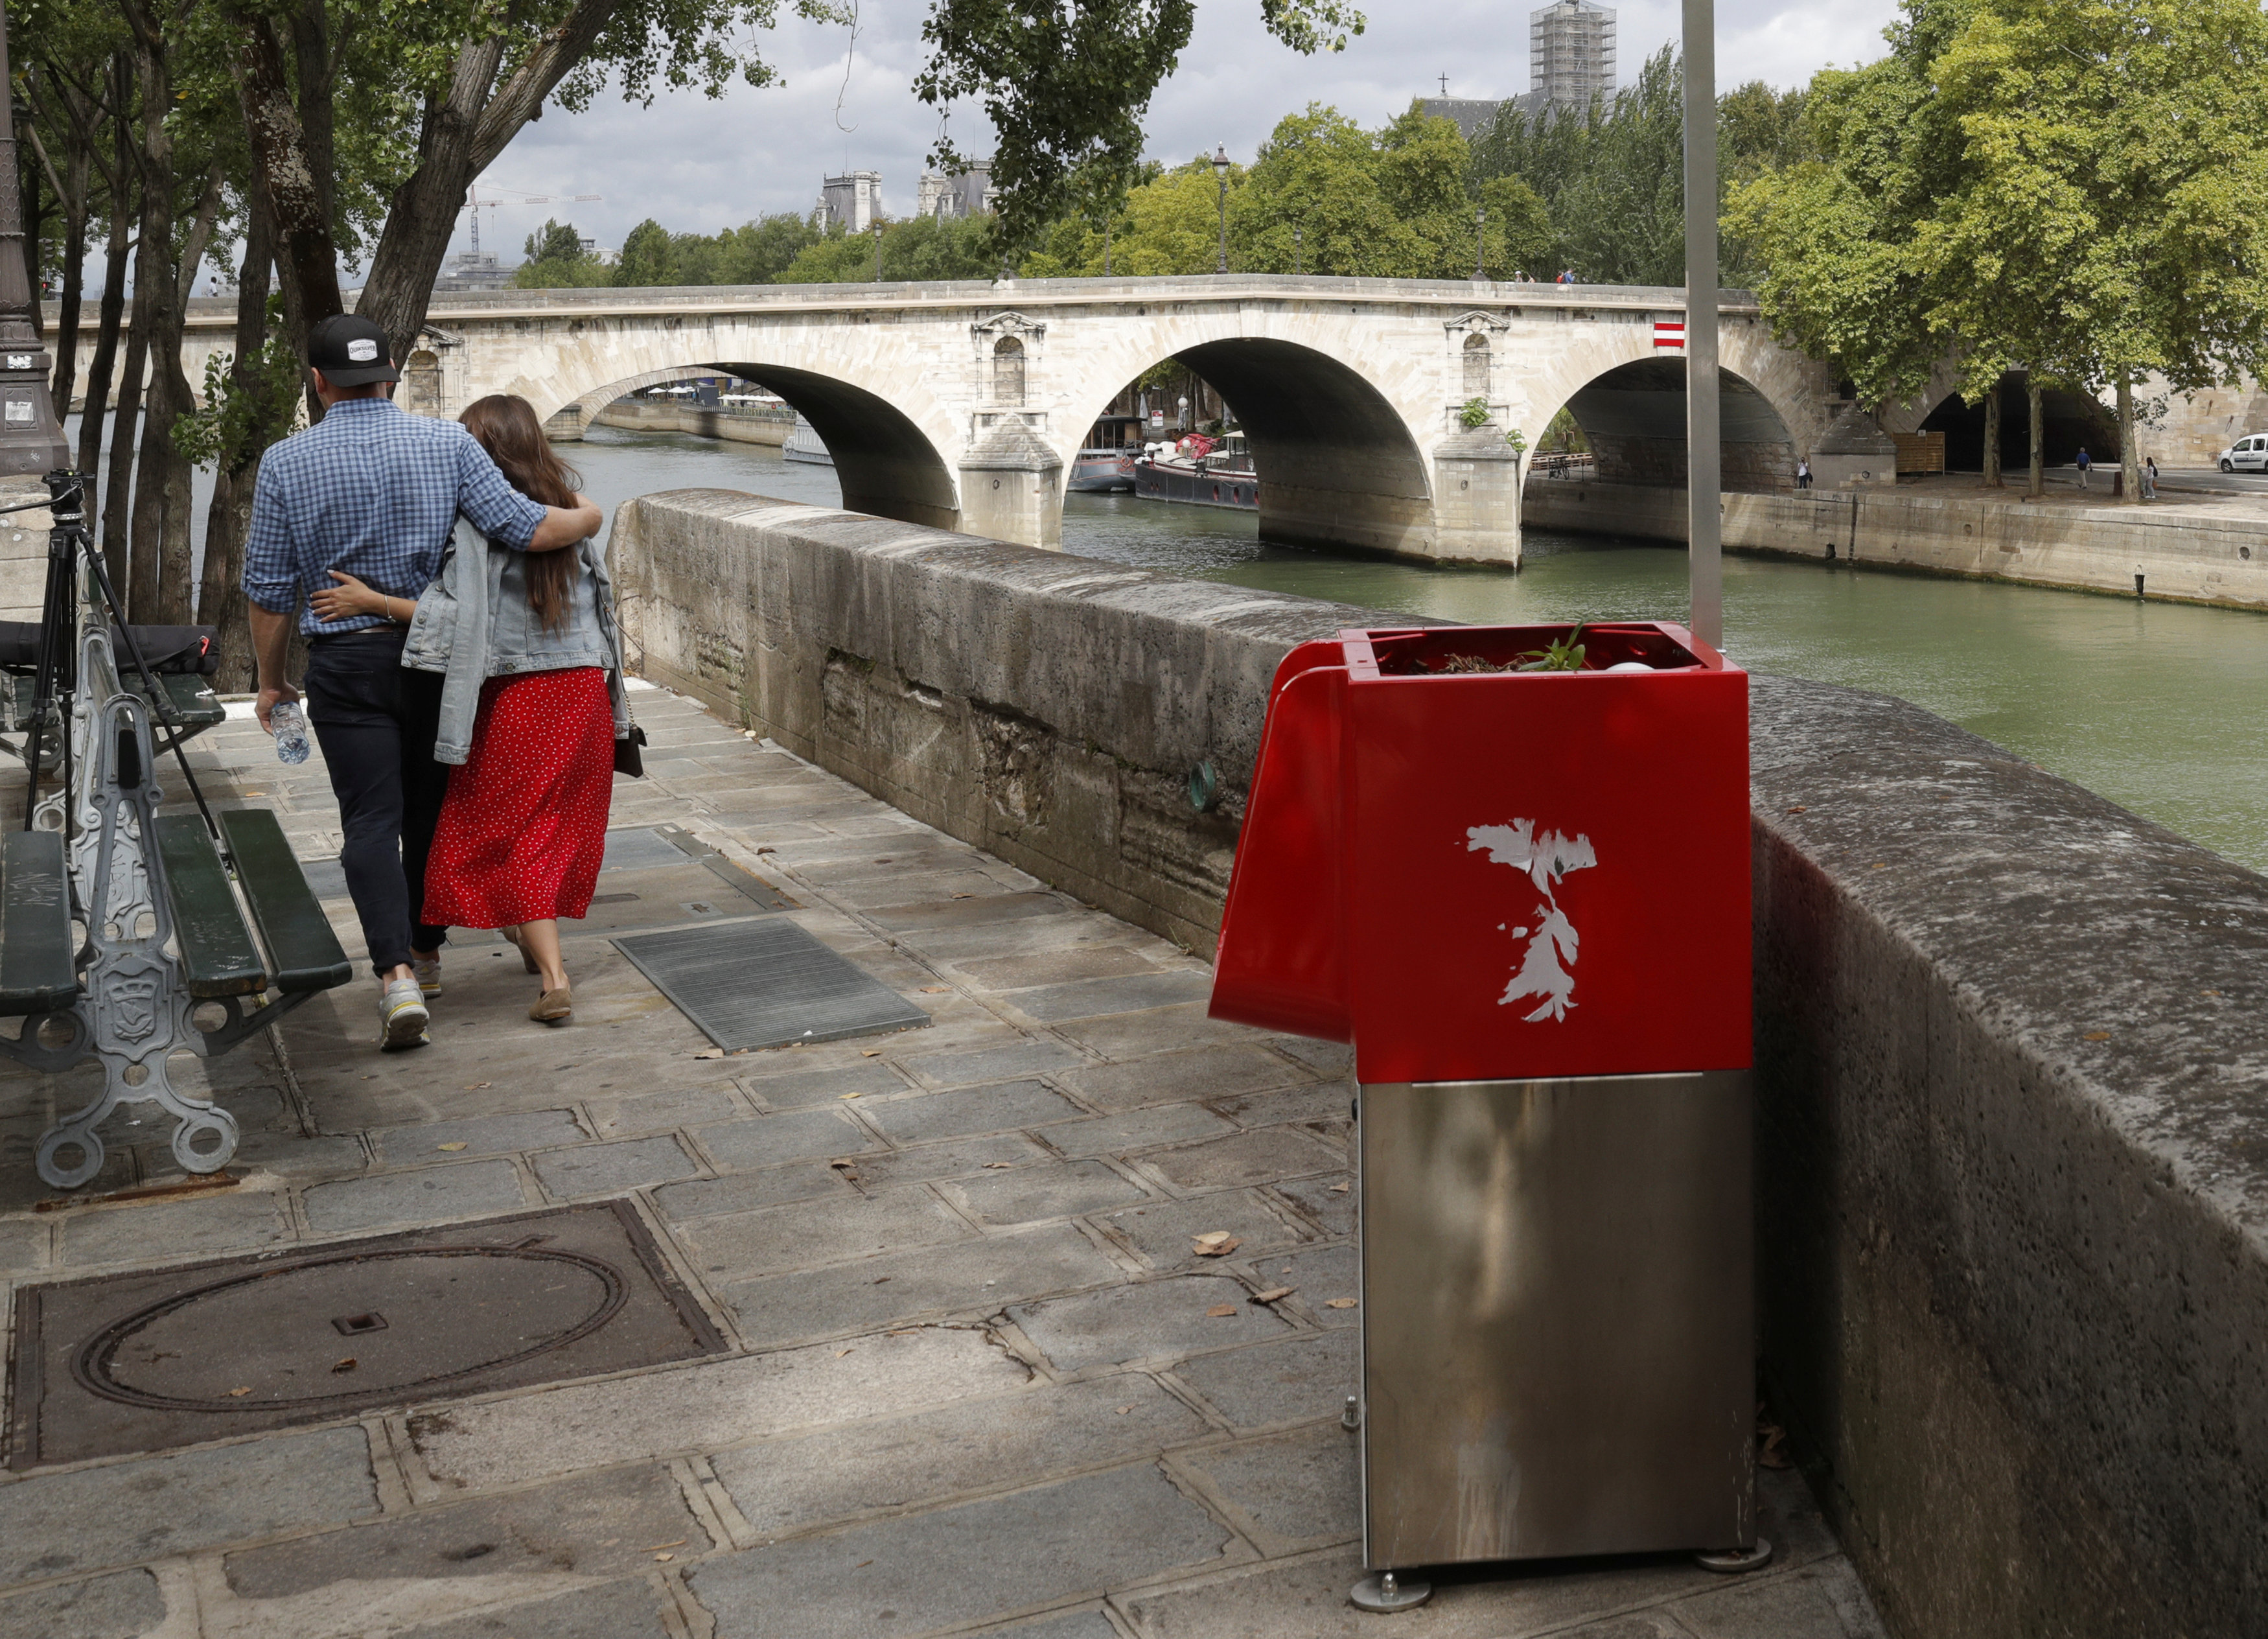 A couple walks near a bright red, eco-friendly urinal on the Ile Saint-Louis along the Seine River in Paris